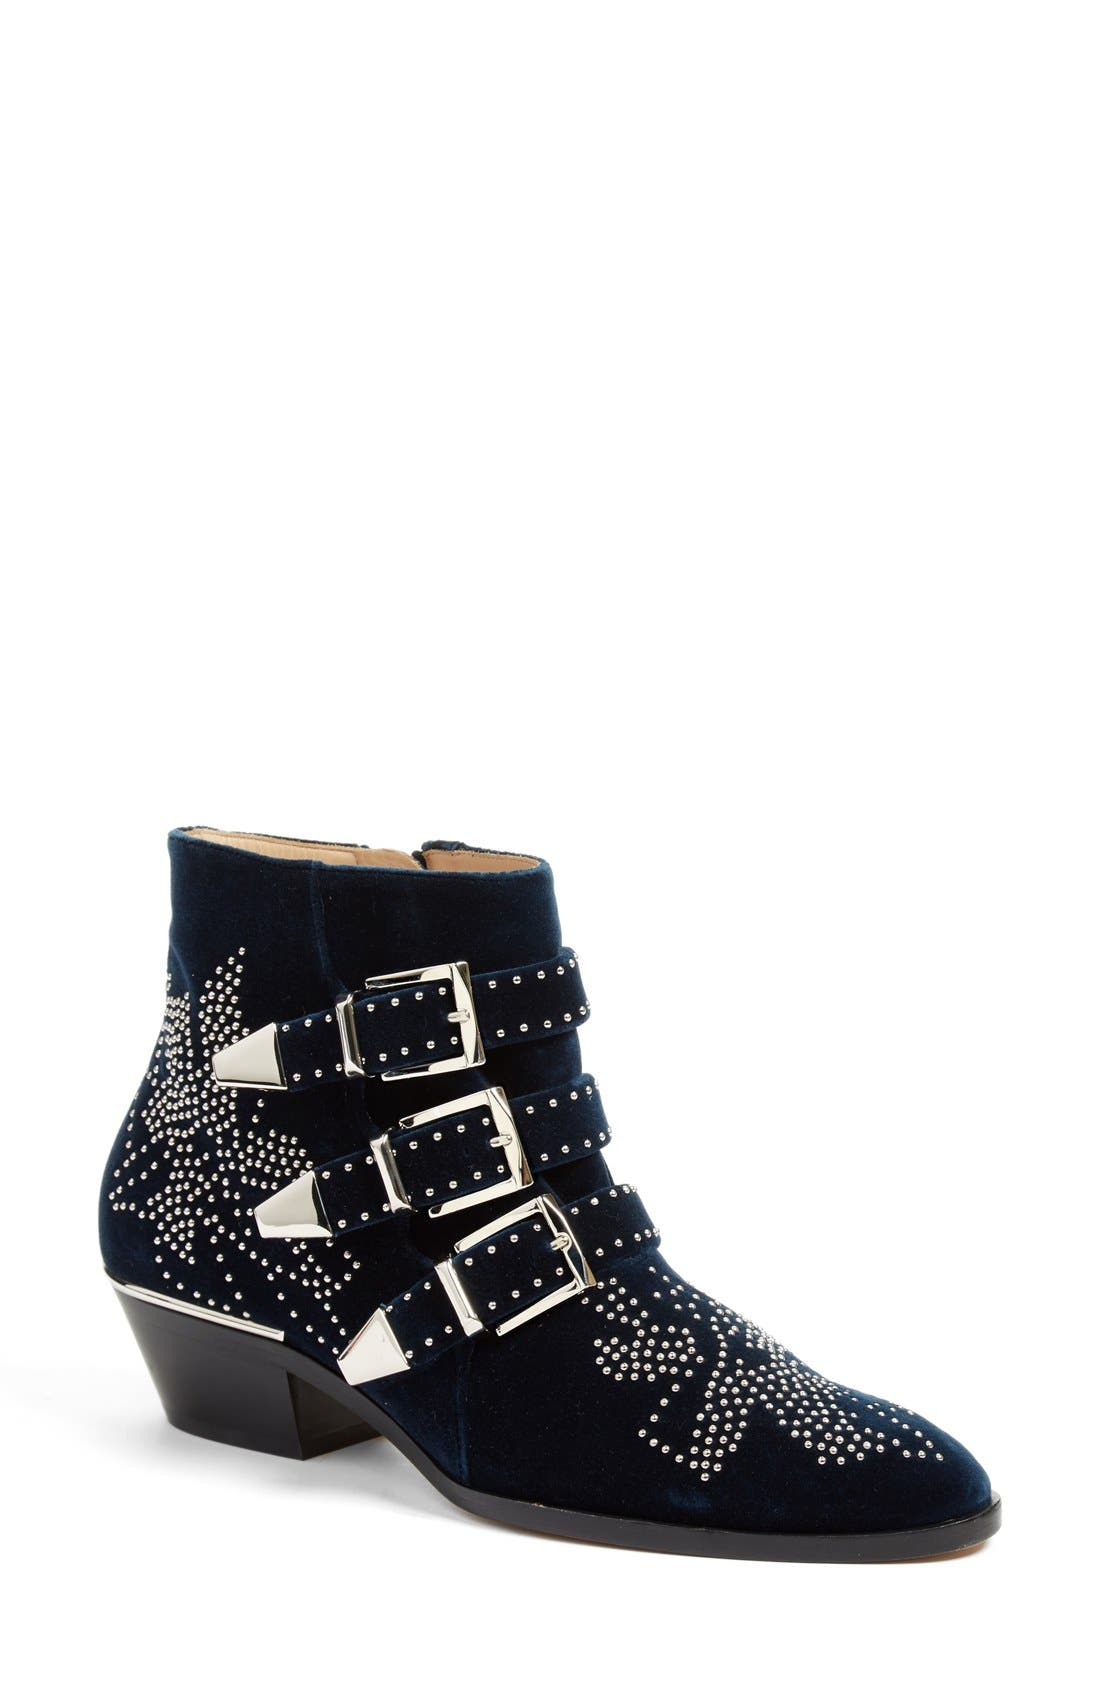 CHLOÉ 'Susan' Studded Buckle Boot